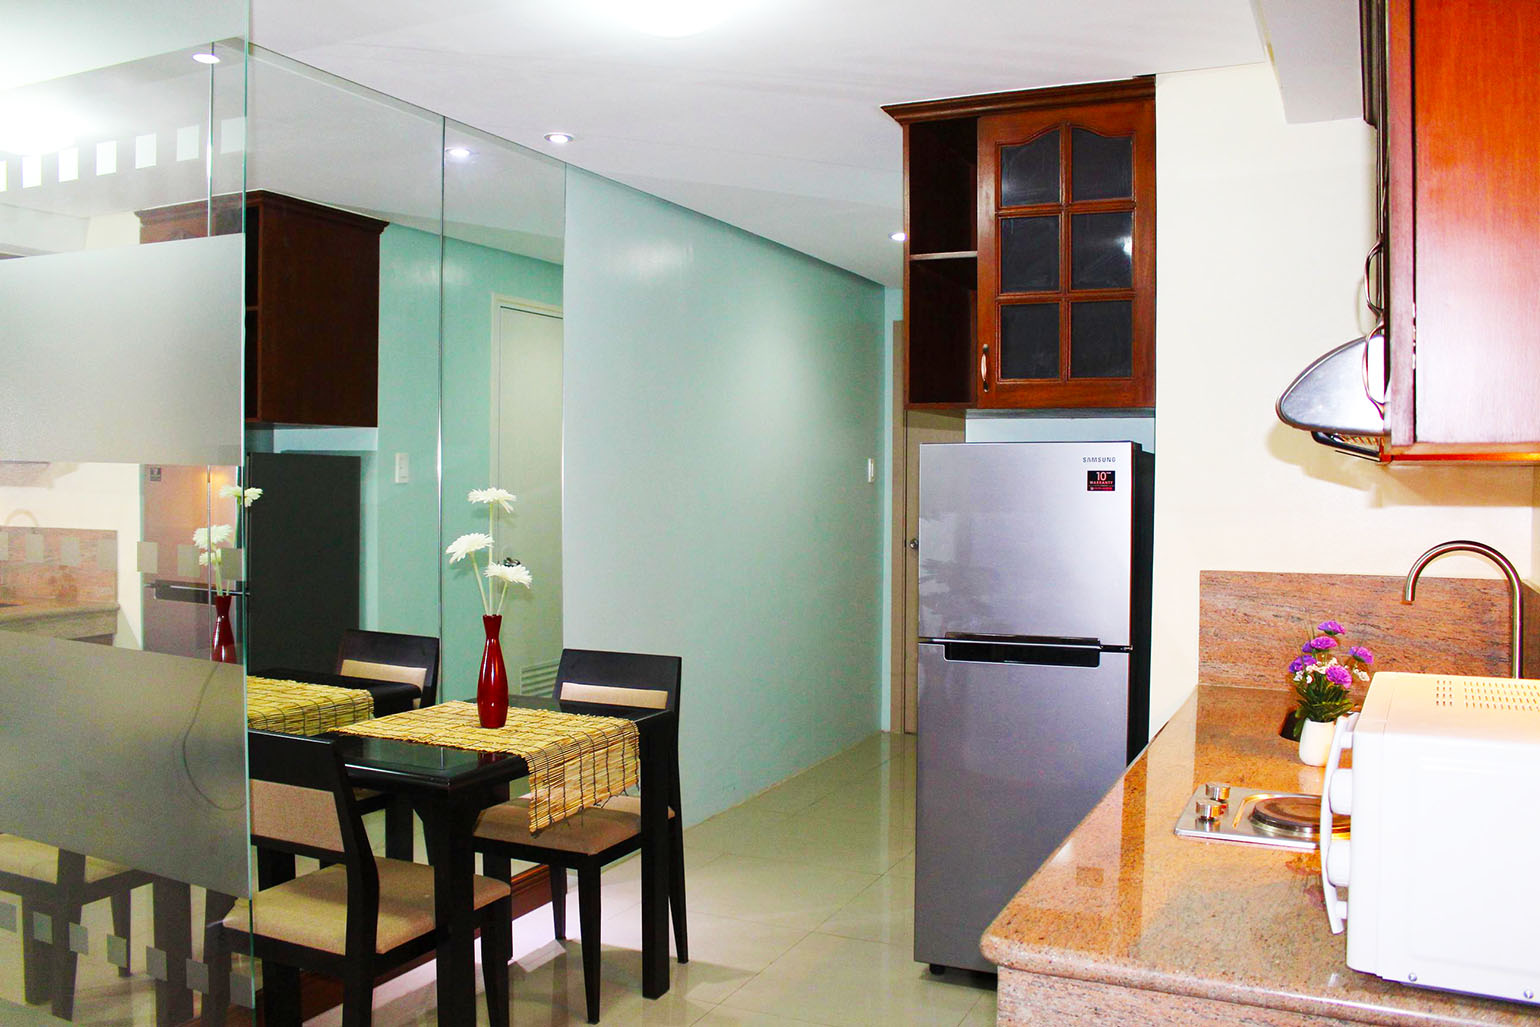 Condo for rent in quezon city 1 br fully furnished for I bedroom condo for rent